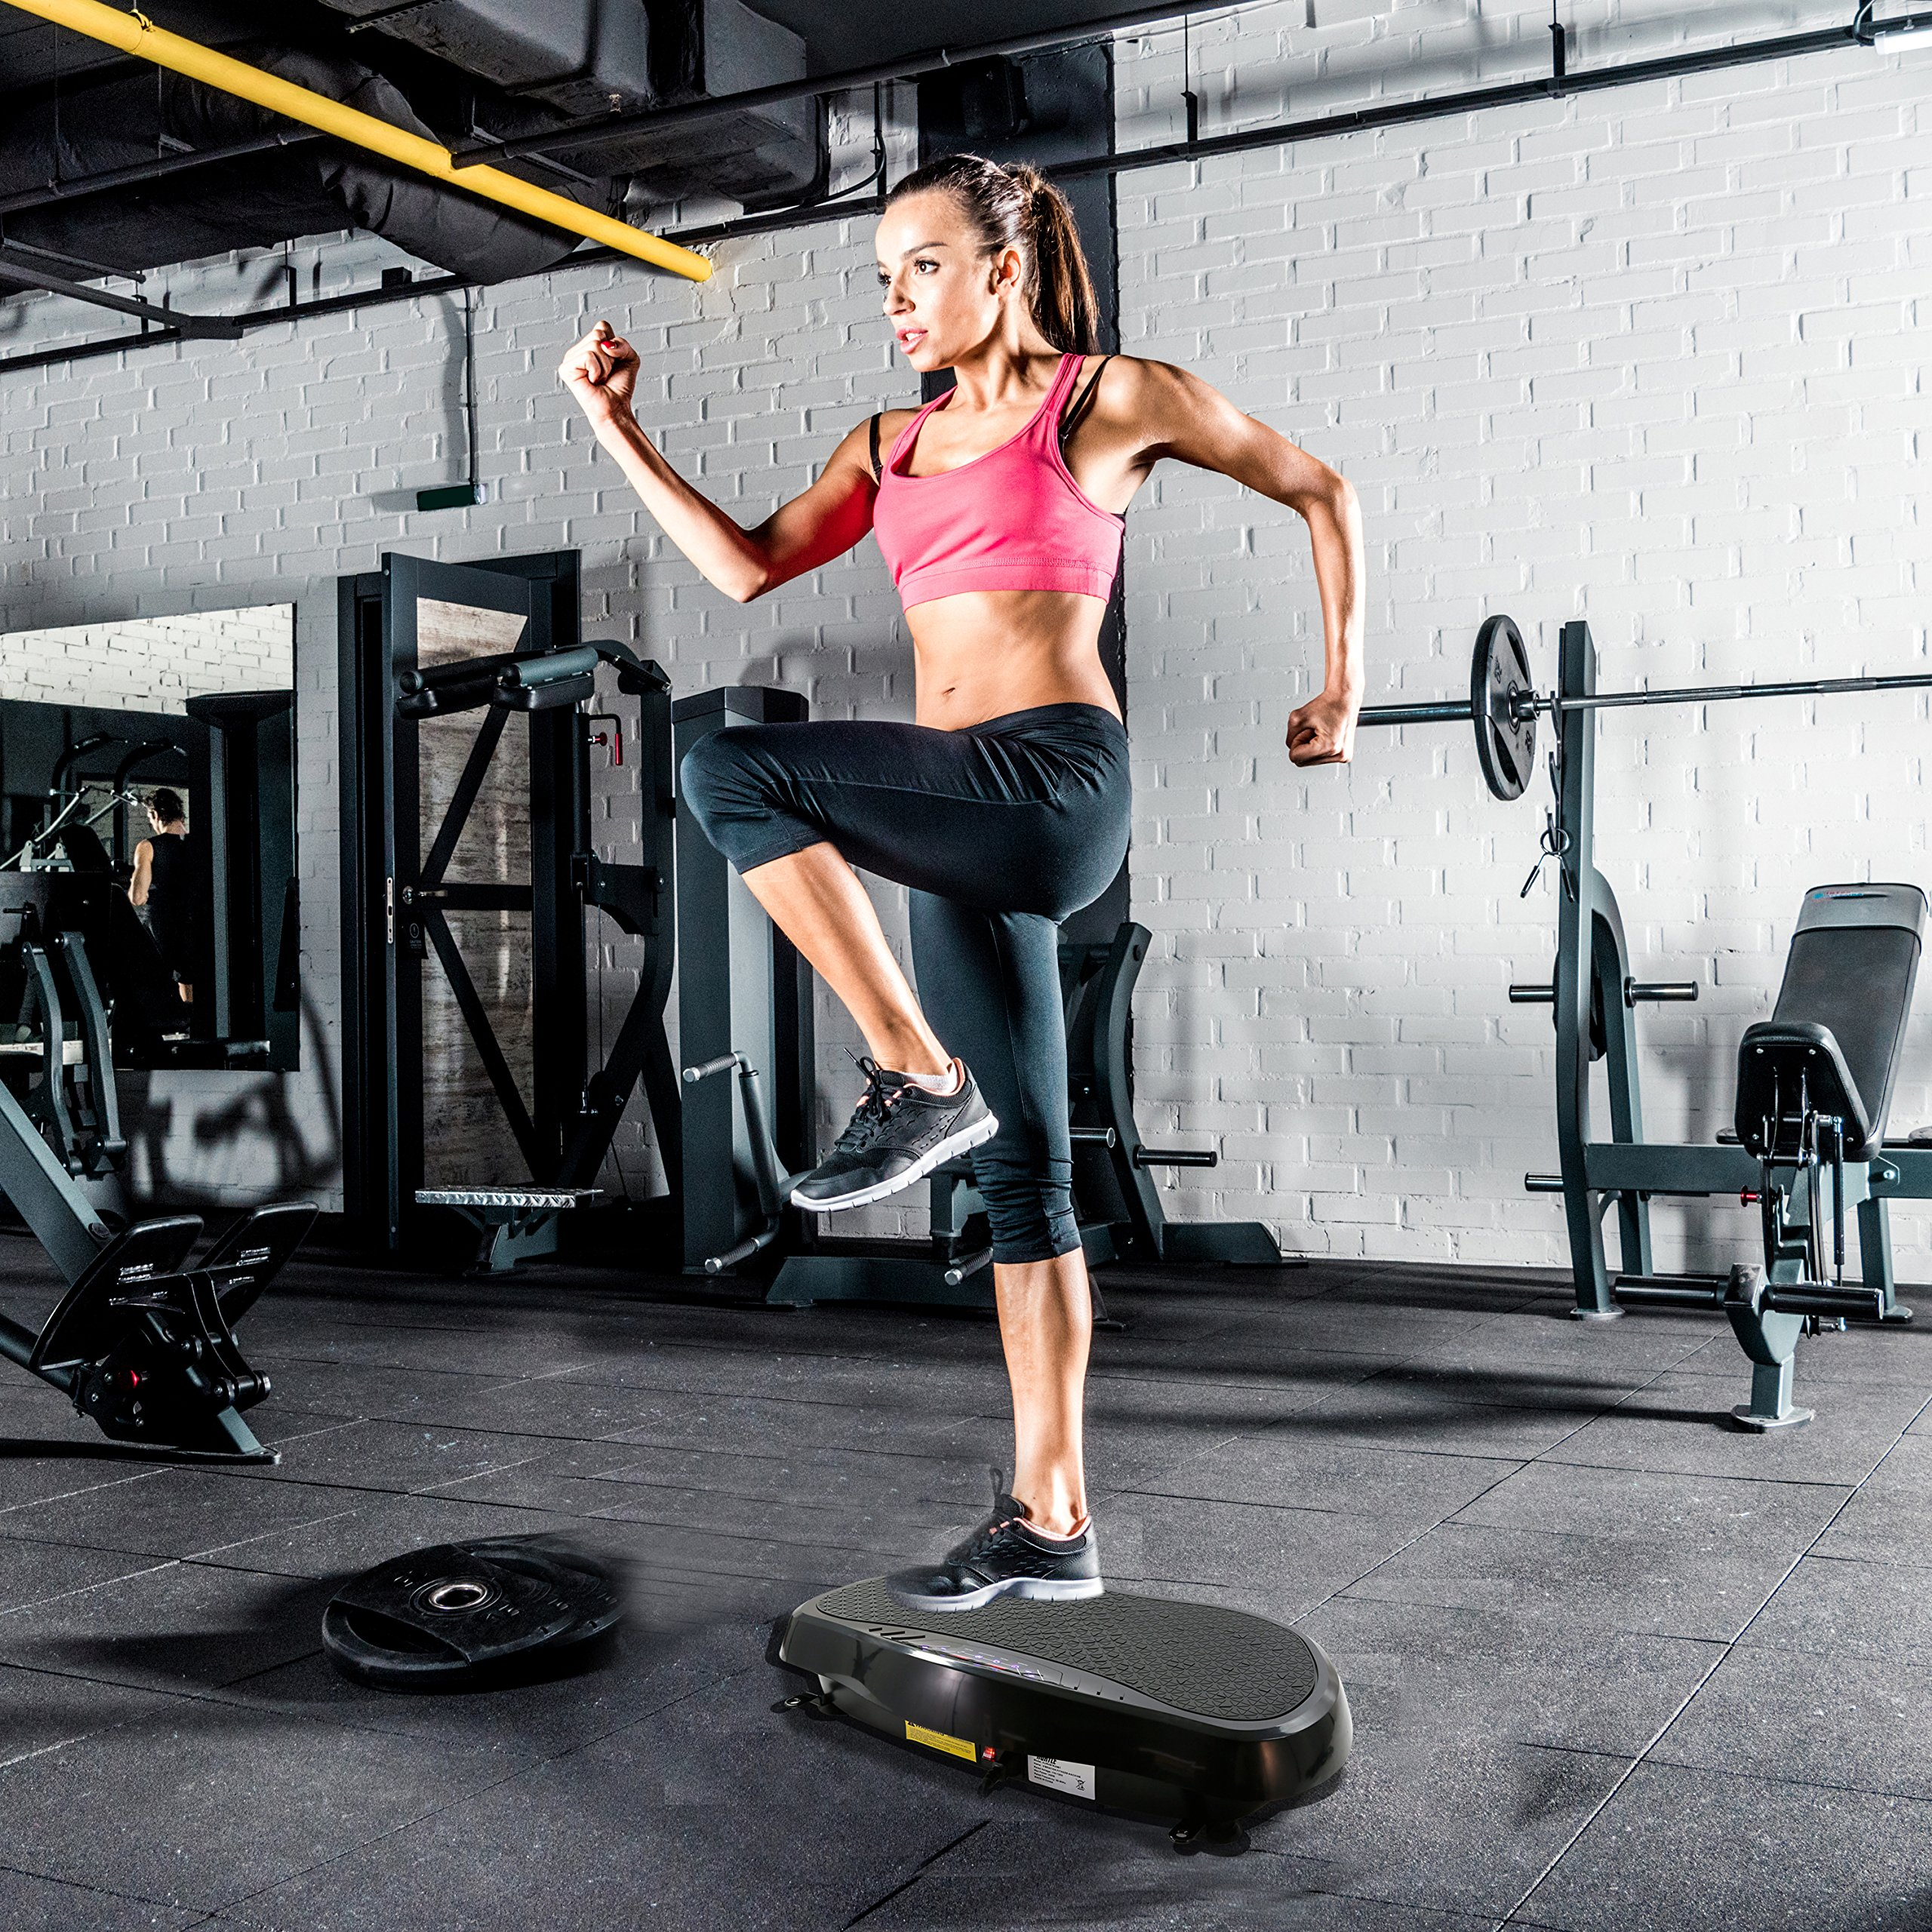 Hurtle Crazy Fit Vibration Fitness Machine - Anti-Slip Vibrating Platform Exercise & Workout Trainer, with Built-in Bluetooth Speakers, Ideal for All Body Types & Age Groups. (HURVBTR35BT) by Hurtle (Image #6)